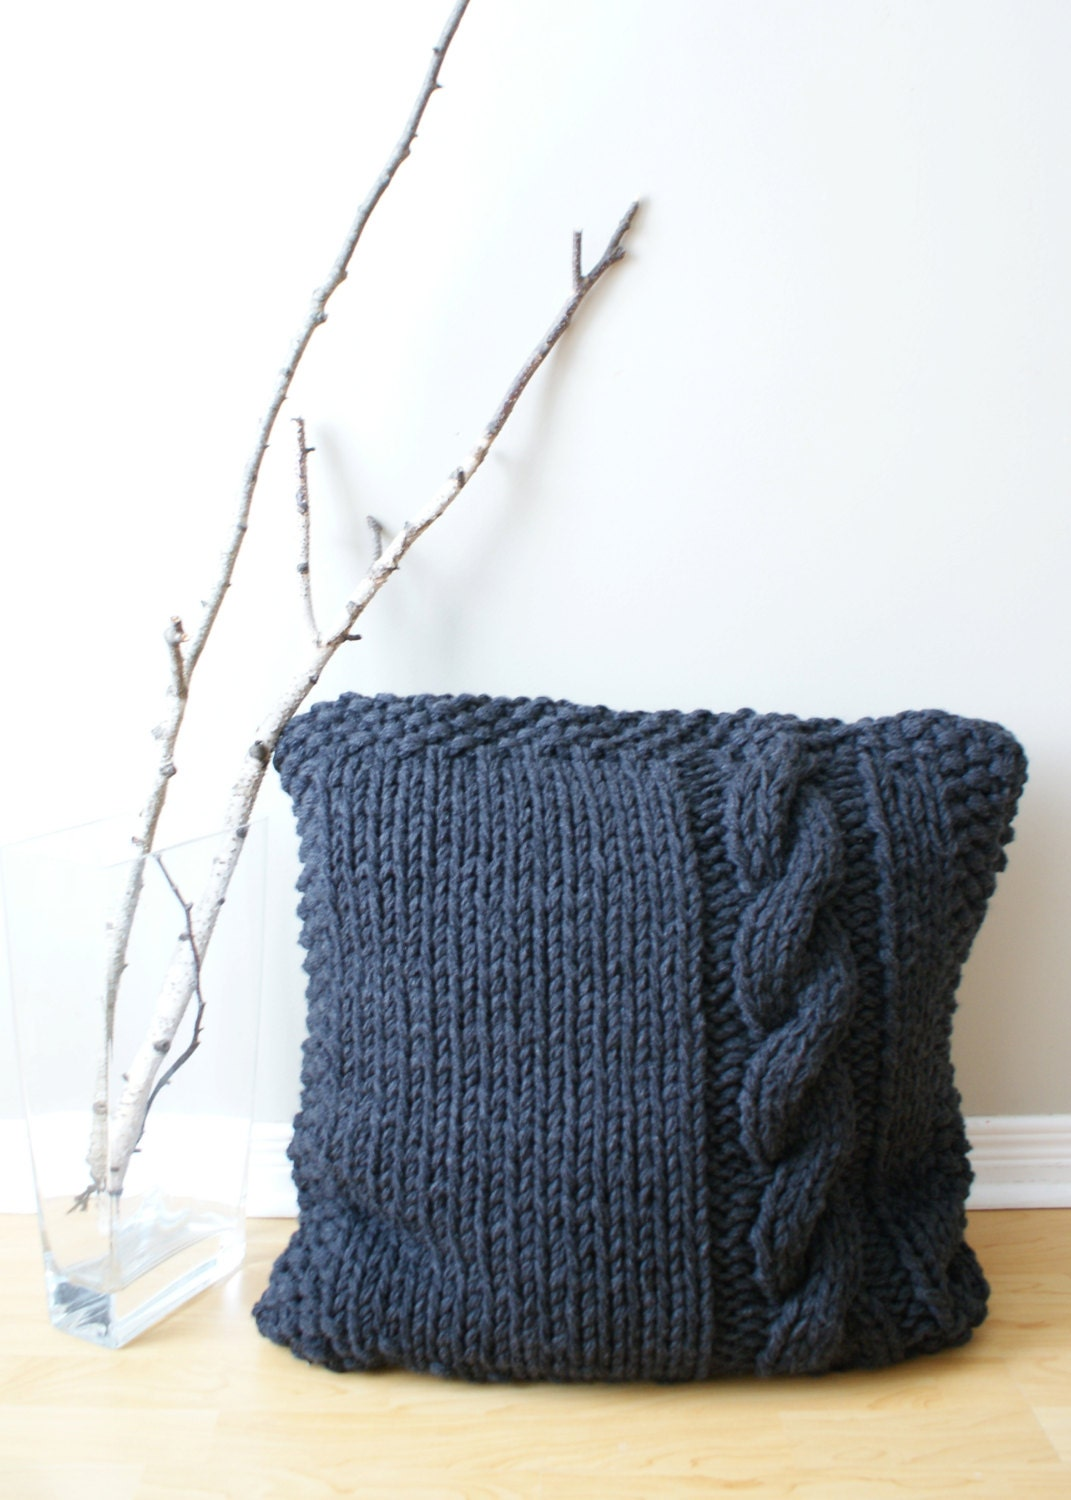 Cable Knit Sweater Pattern Free : DIY Knitting PATTERN Chunky Cable Knit Pillow Cover